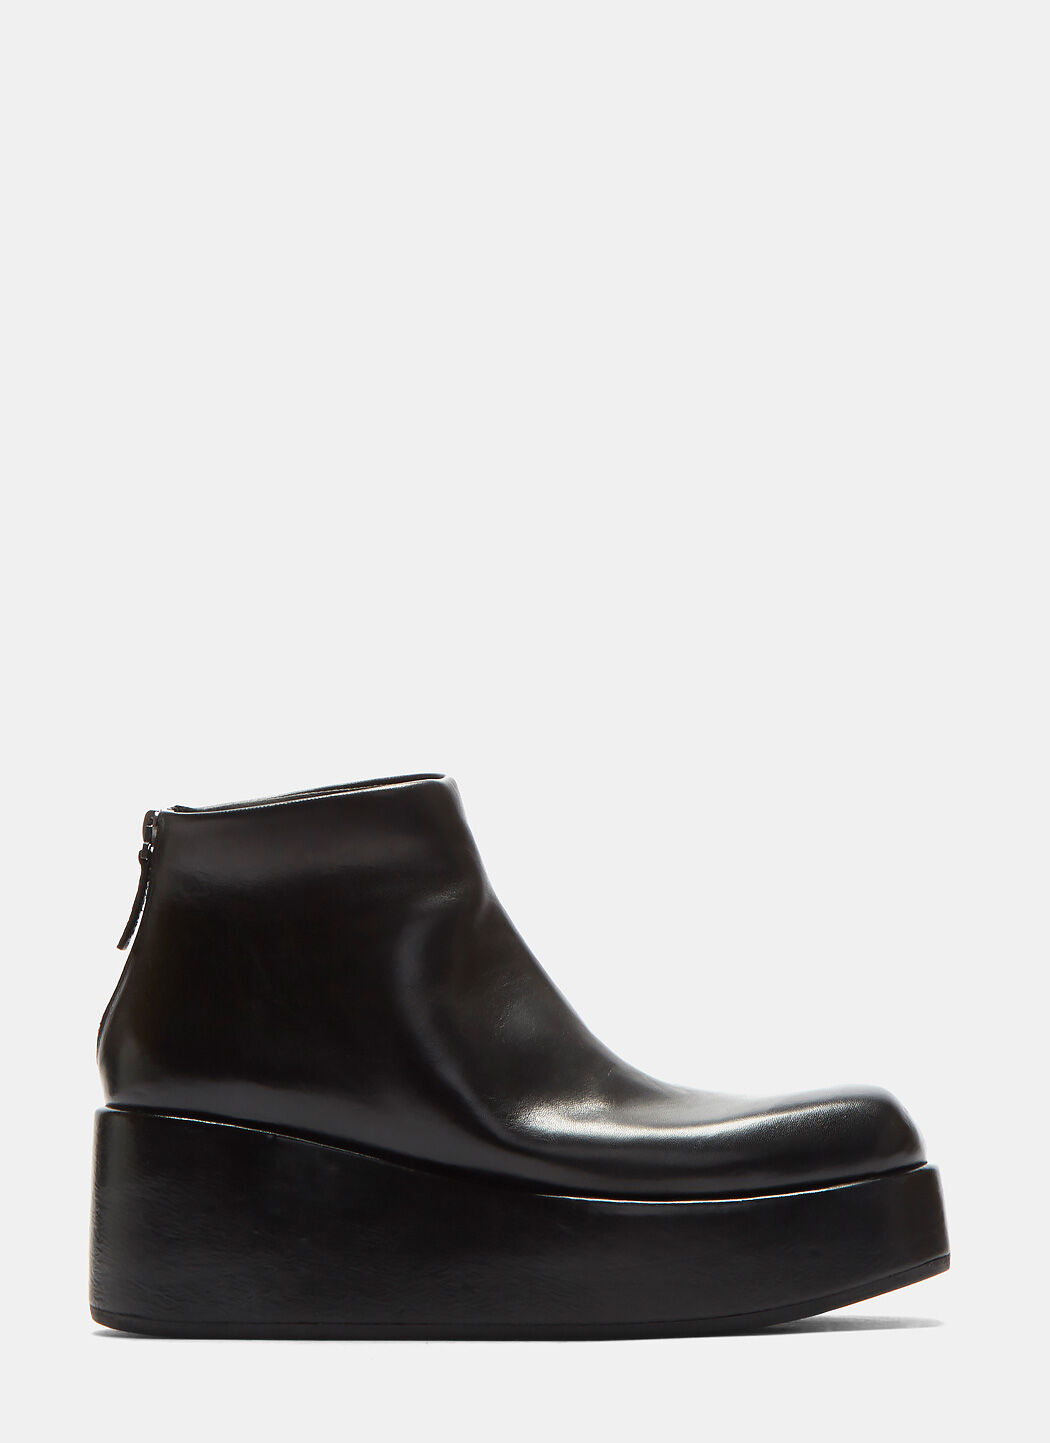 Leather Zipped Platform Boots in Black